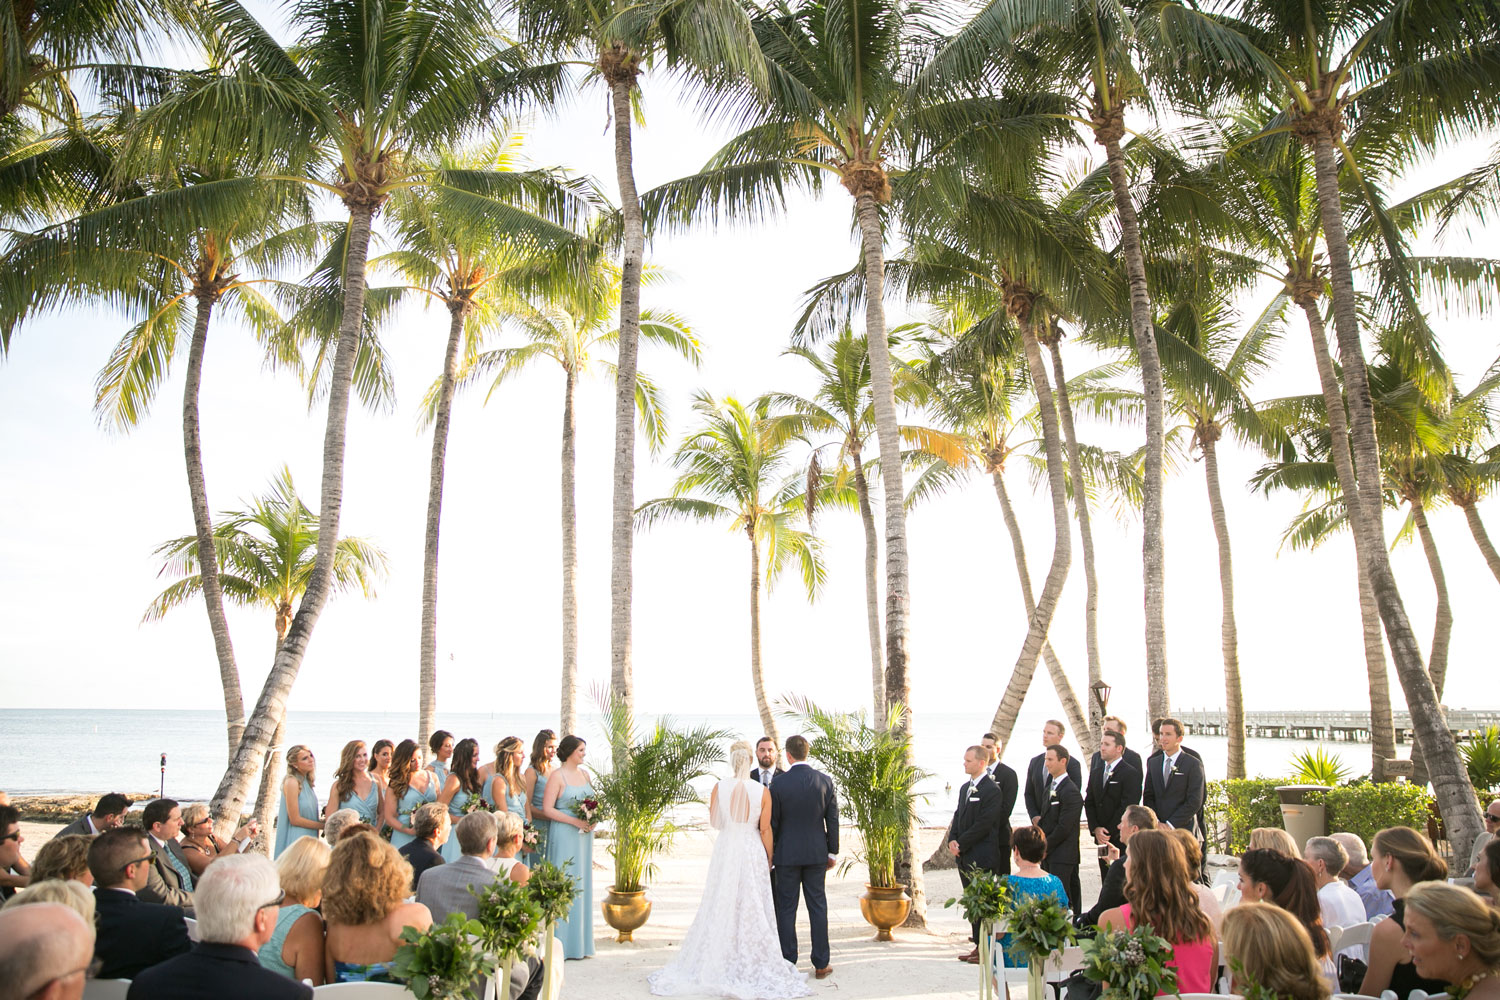 Tips for attending a destination wedding inside weddings tips for attending a destination wedding junglespirit Images